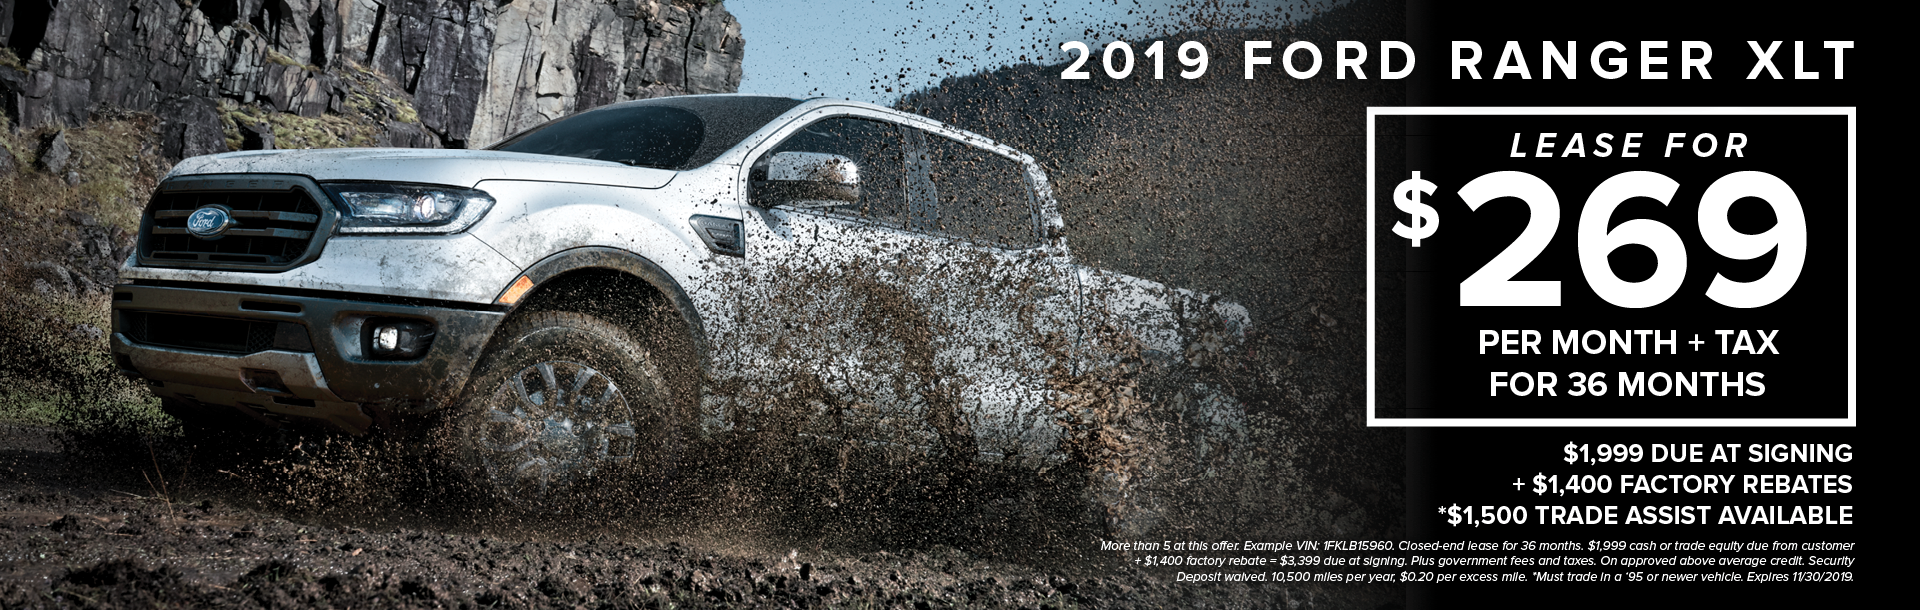 2019 Ford Ranger Xlt Lease1